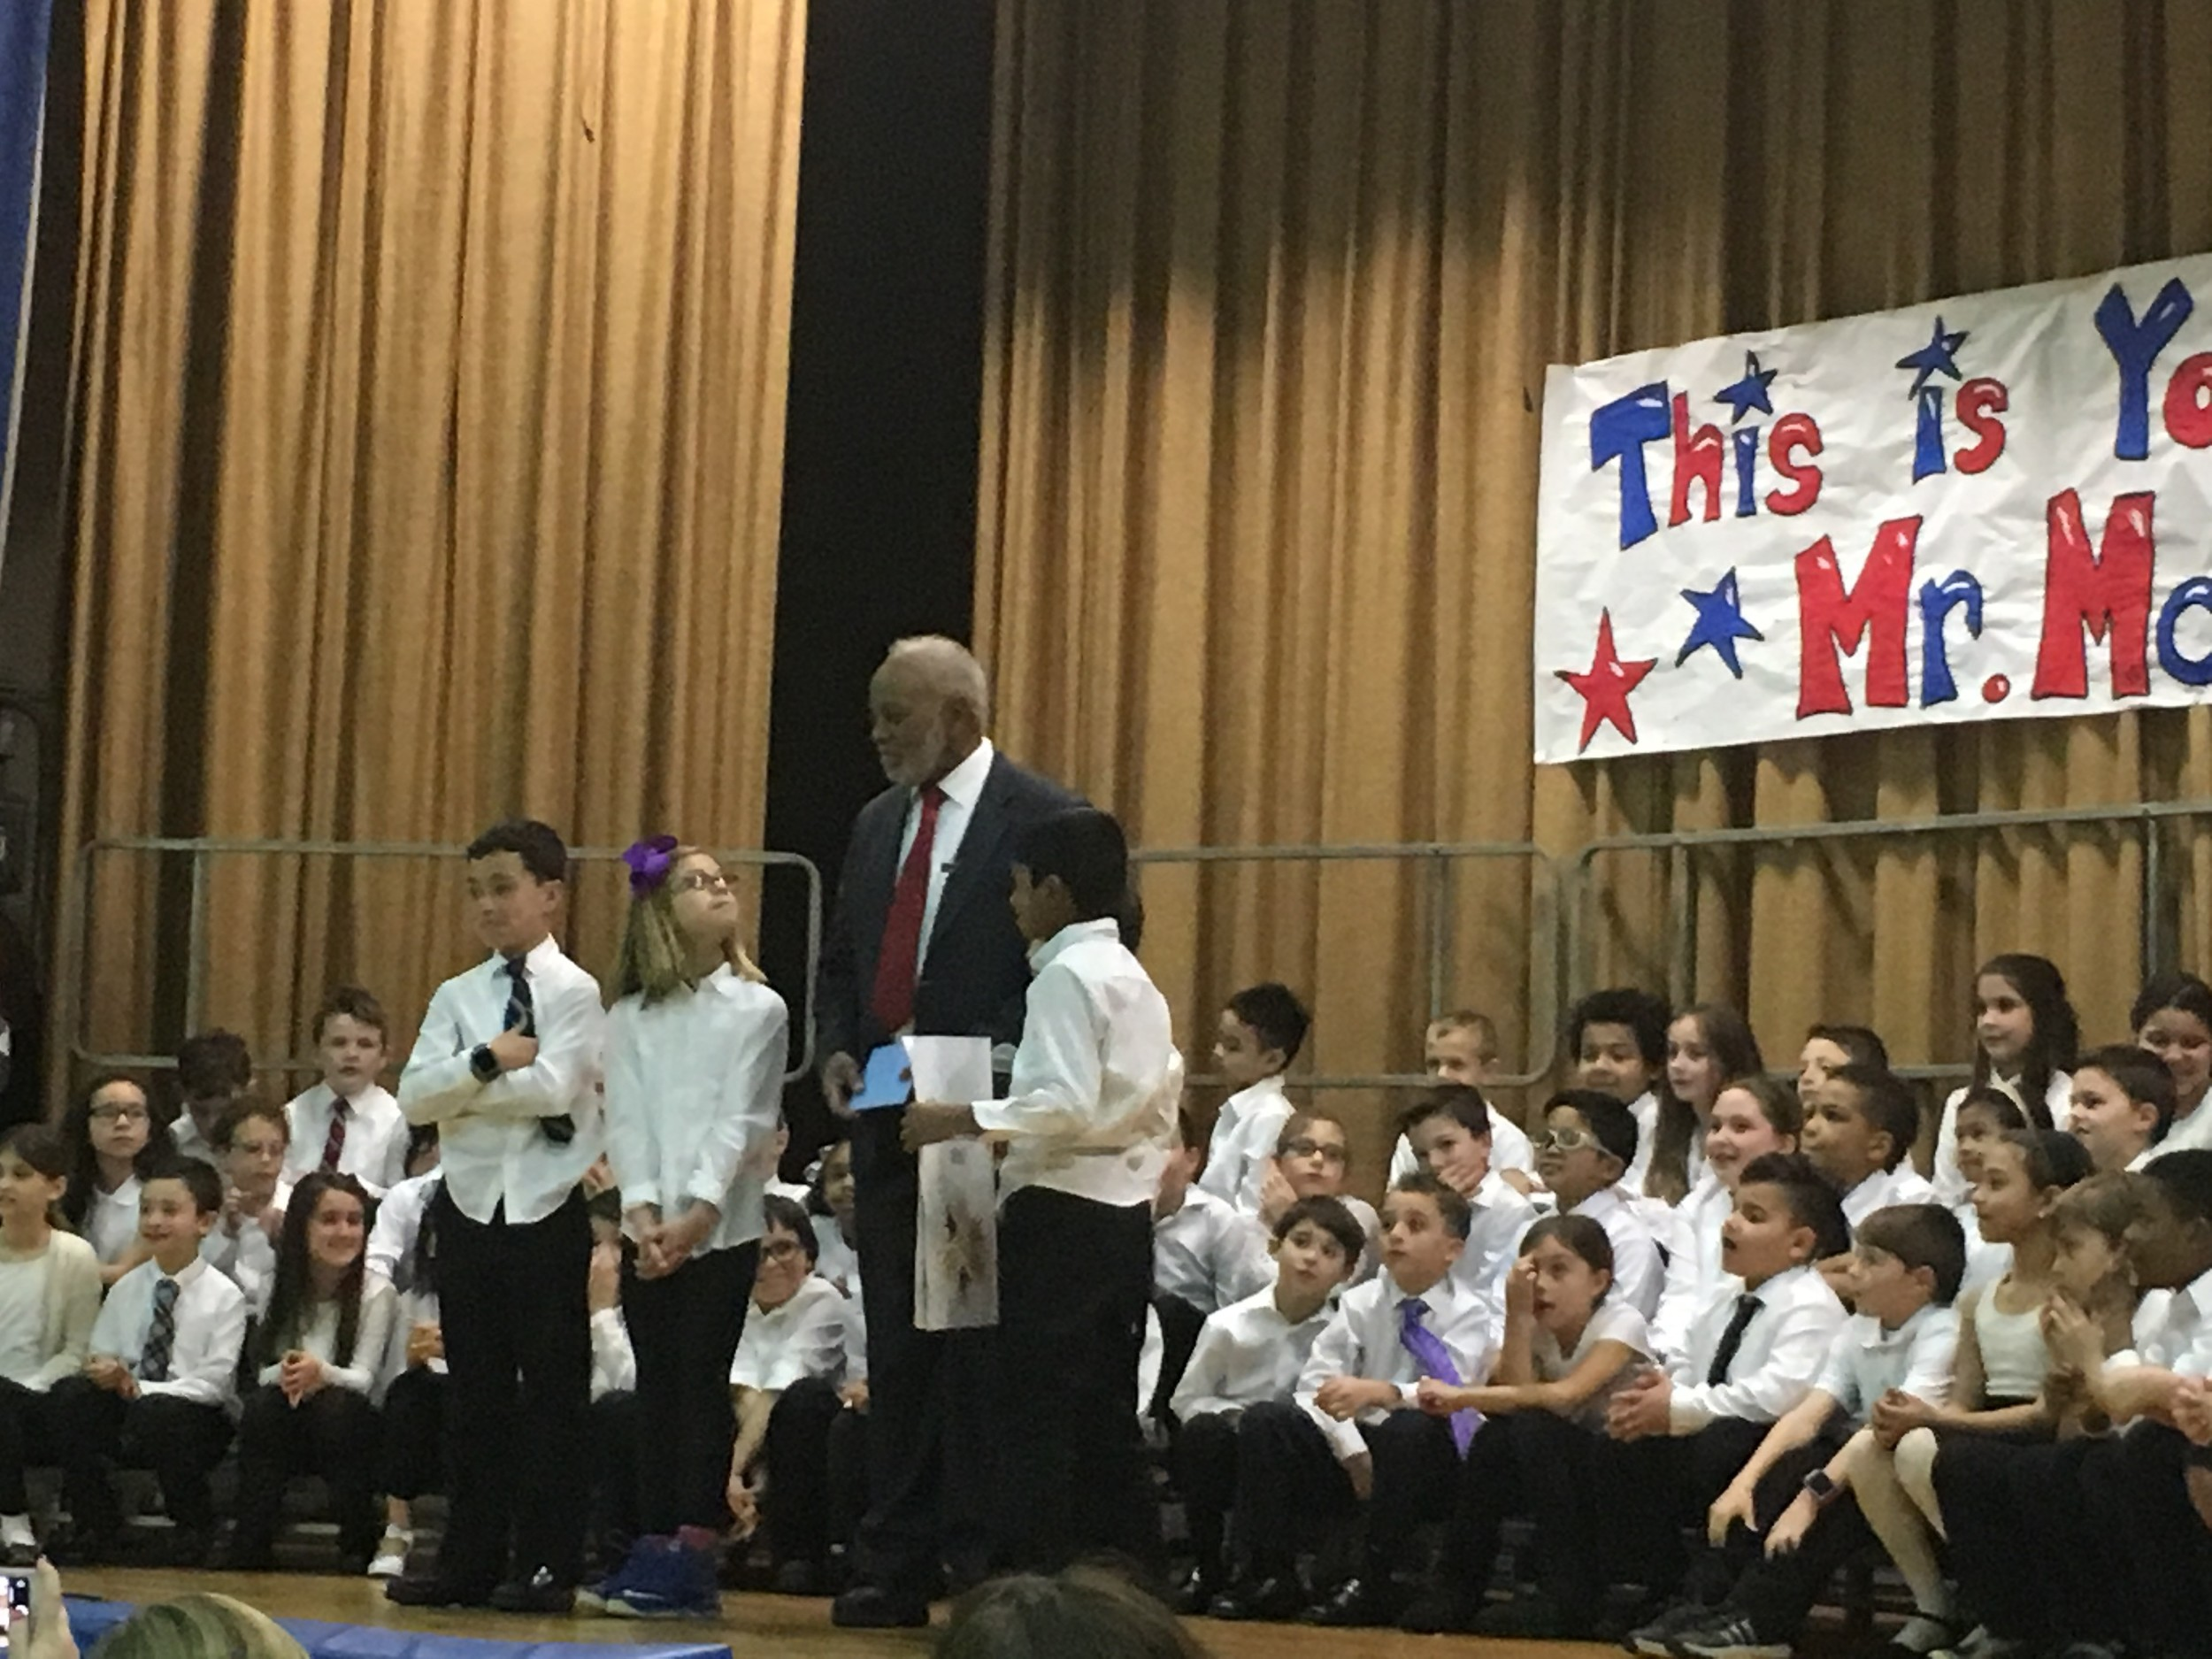 Third-grade students from Marion Street presented Joseph McNeil with a birthday card for his 75th birthday, which is on March 25.